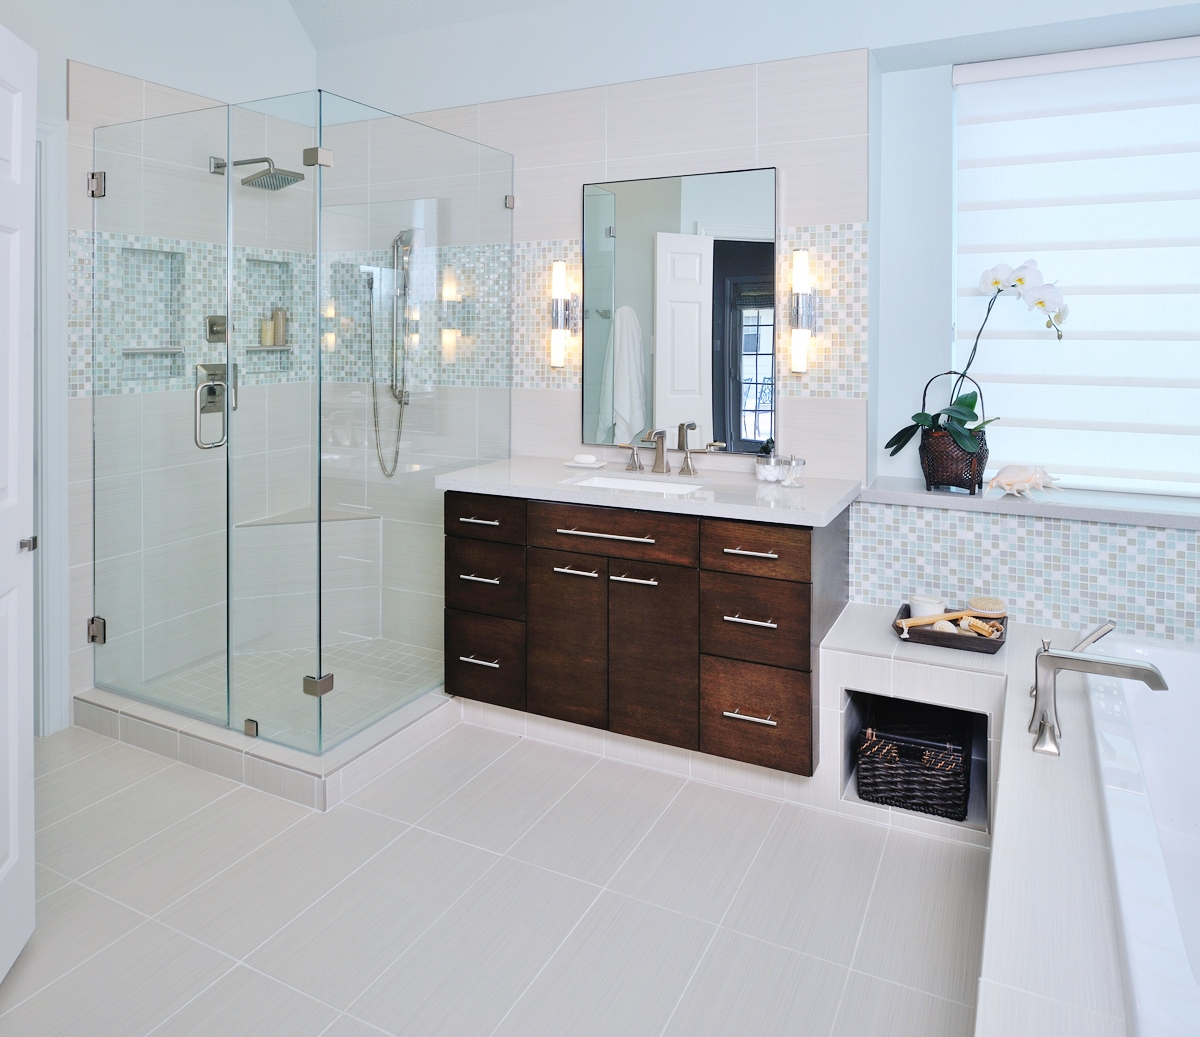 11 Simple Ways To Make A Small Bathroom Look BIGGER